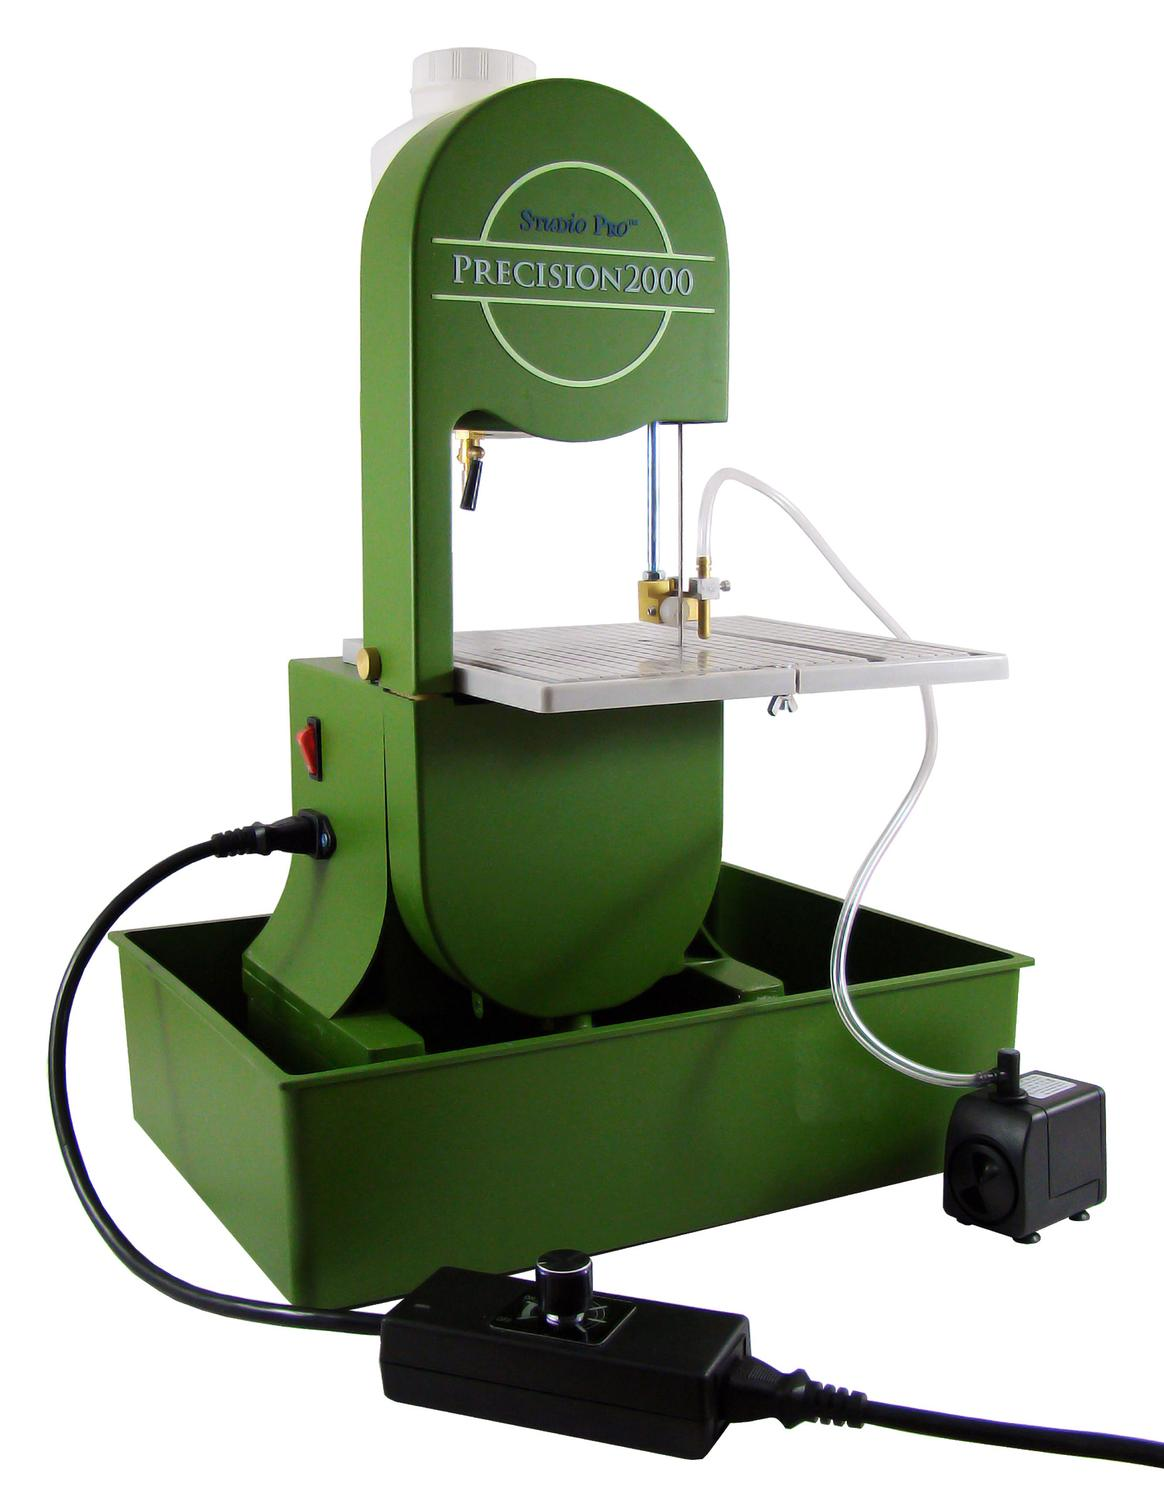 Precision 2000 Deluxe Bandsaw